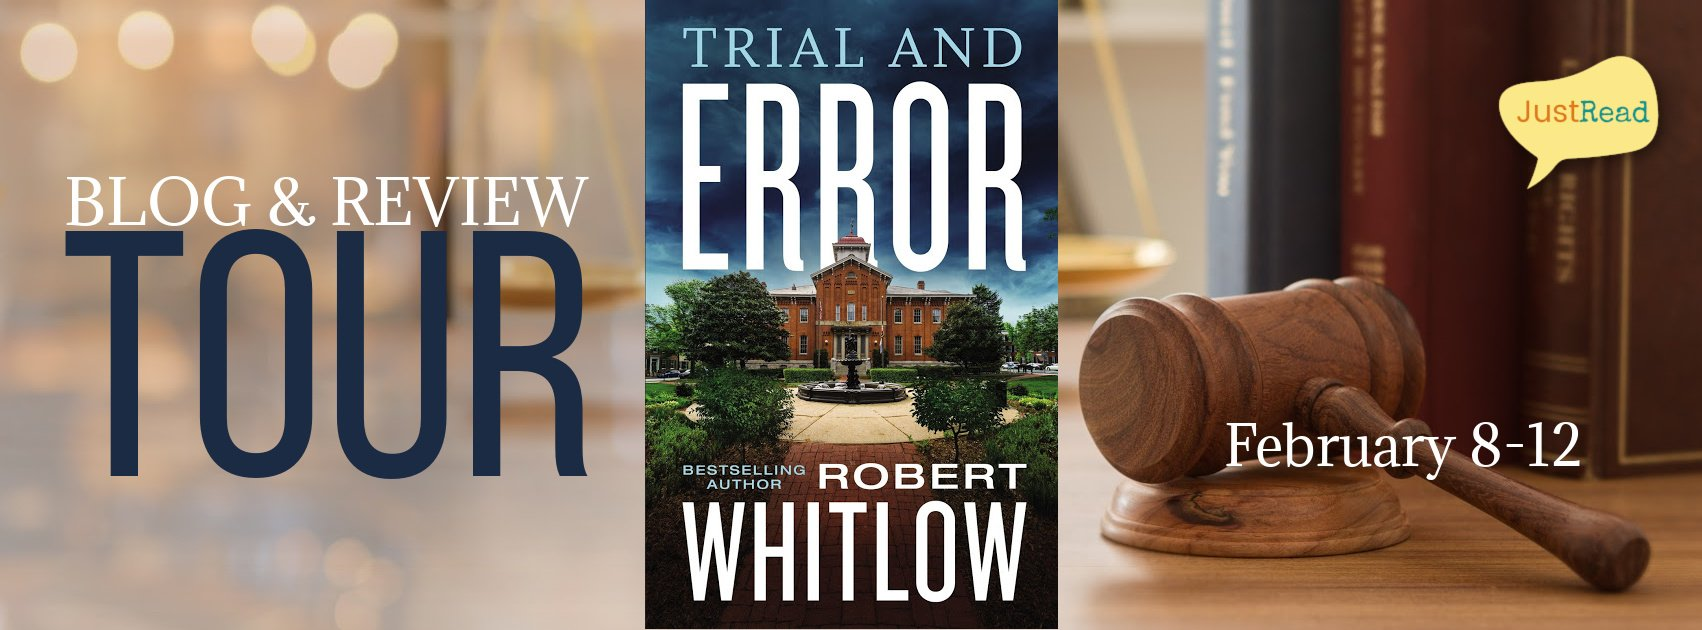 Trial and Error JustRead Blog + Review Tour